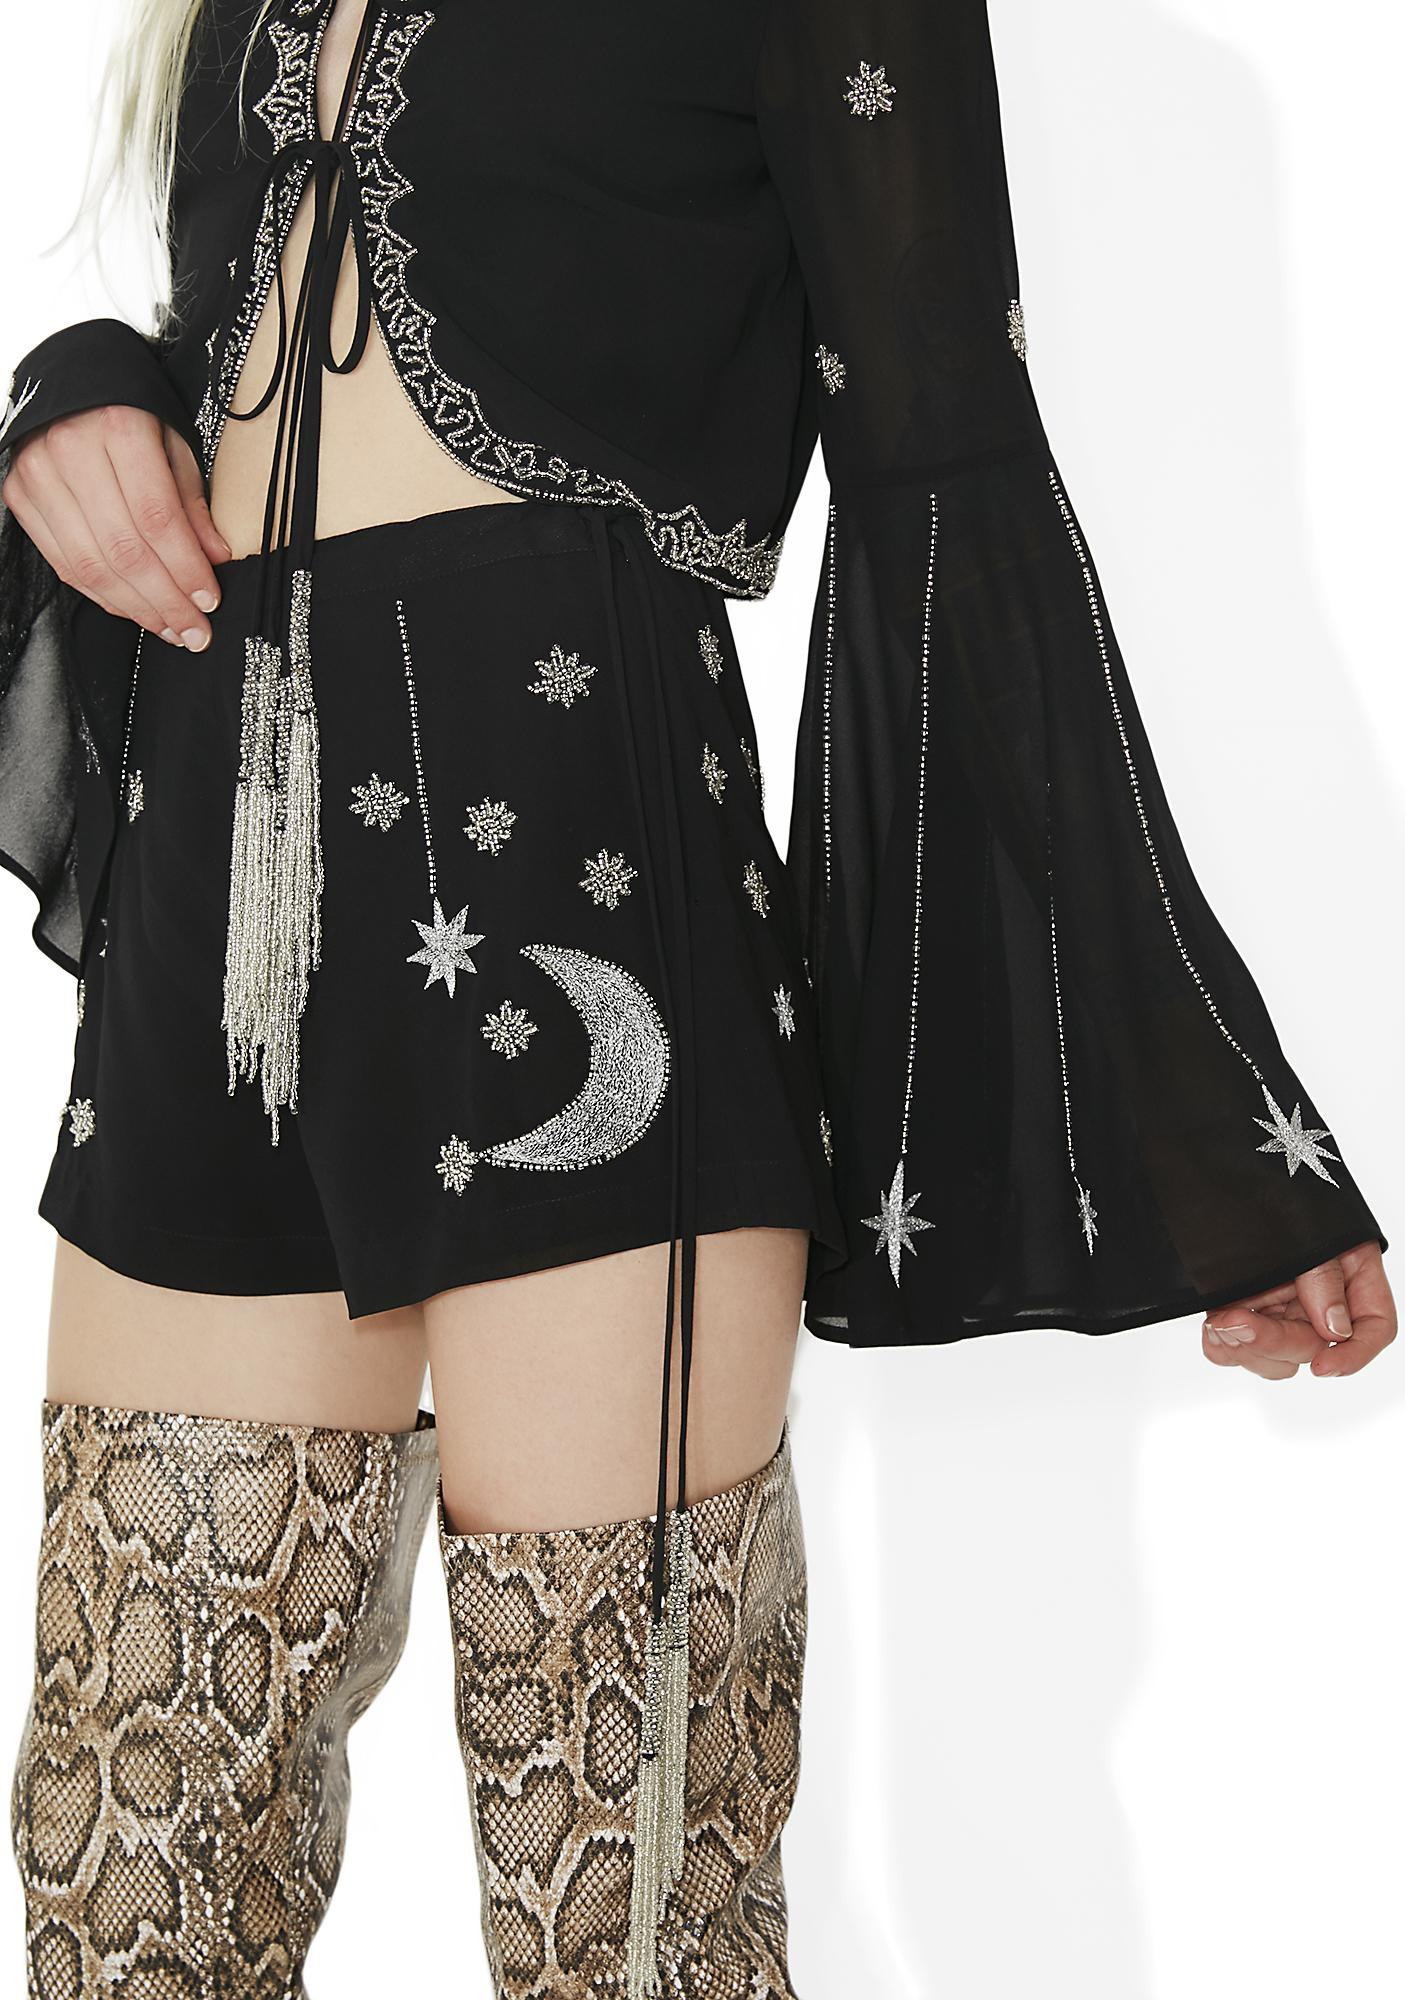 Current Mood Bad Moon Risin' Beaded Shorts